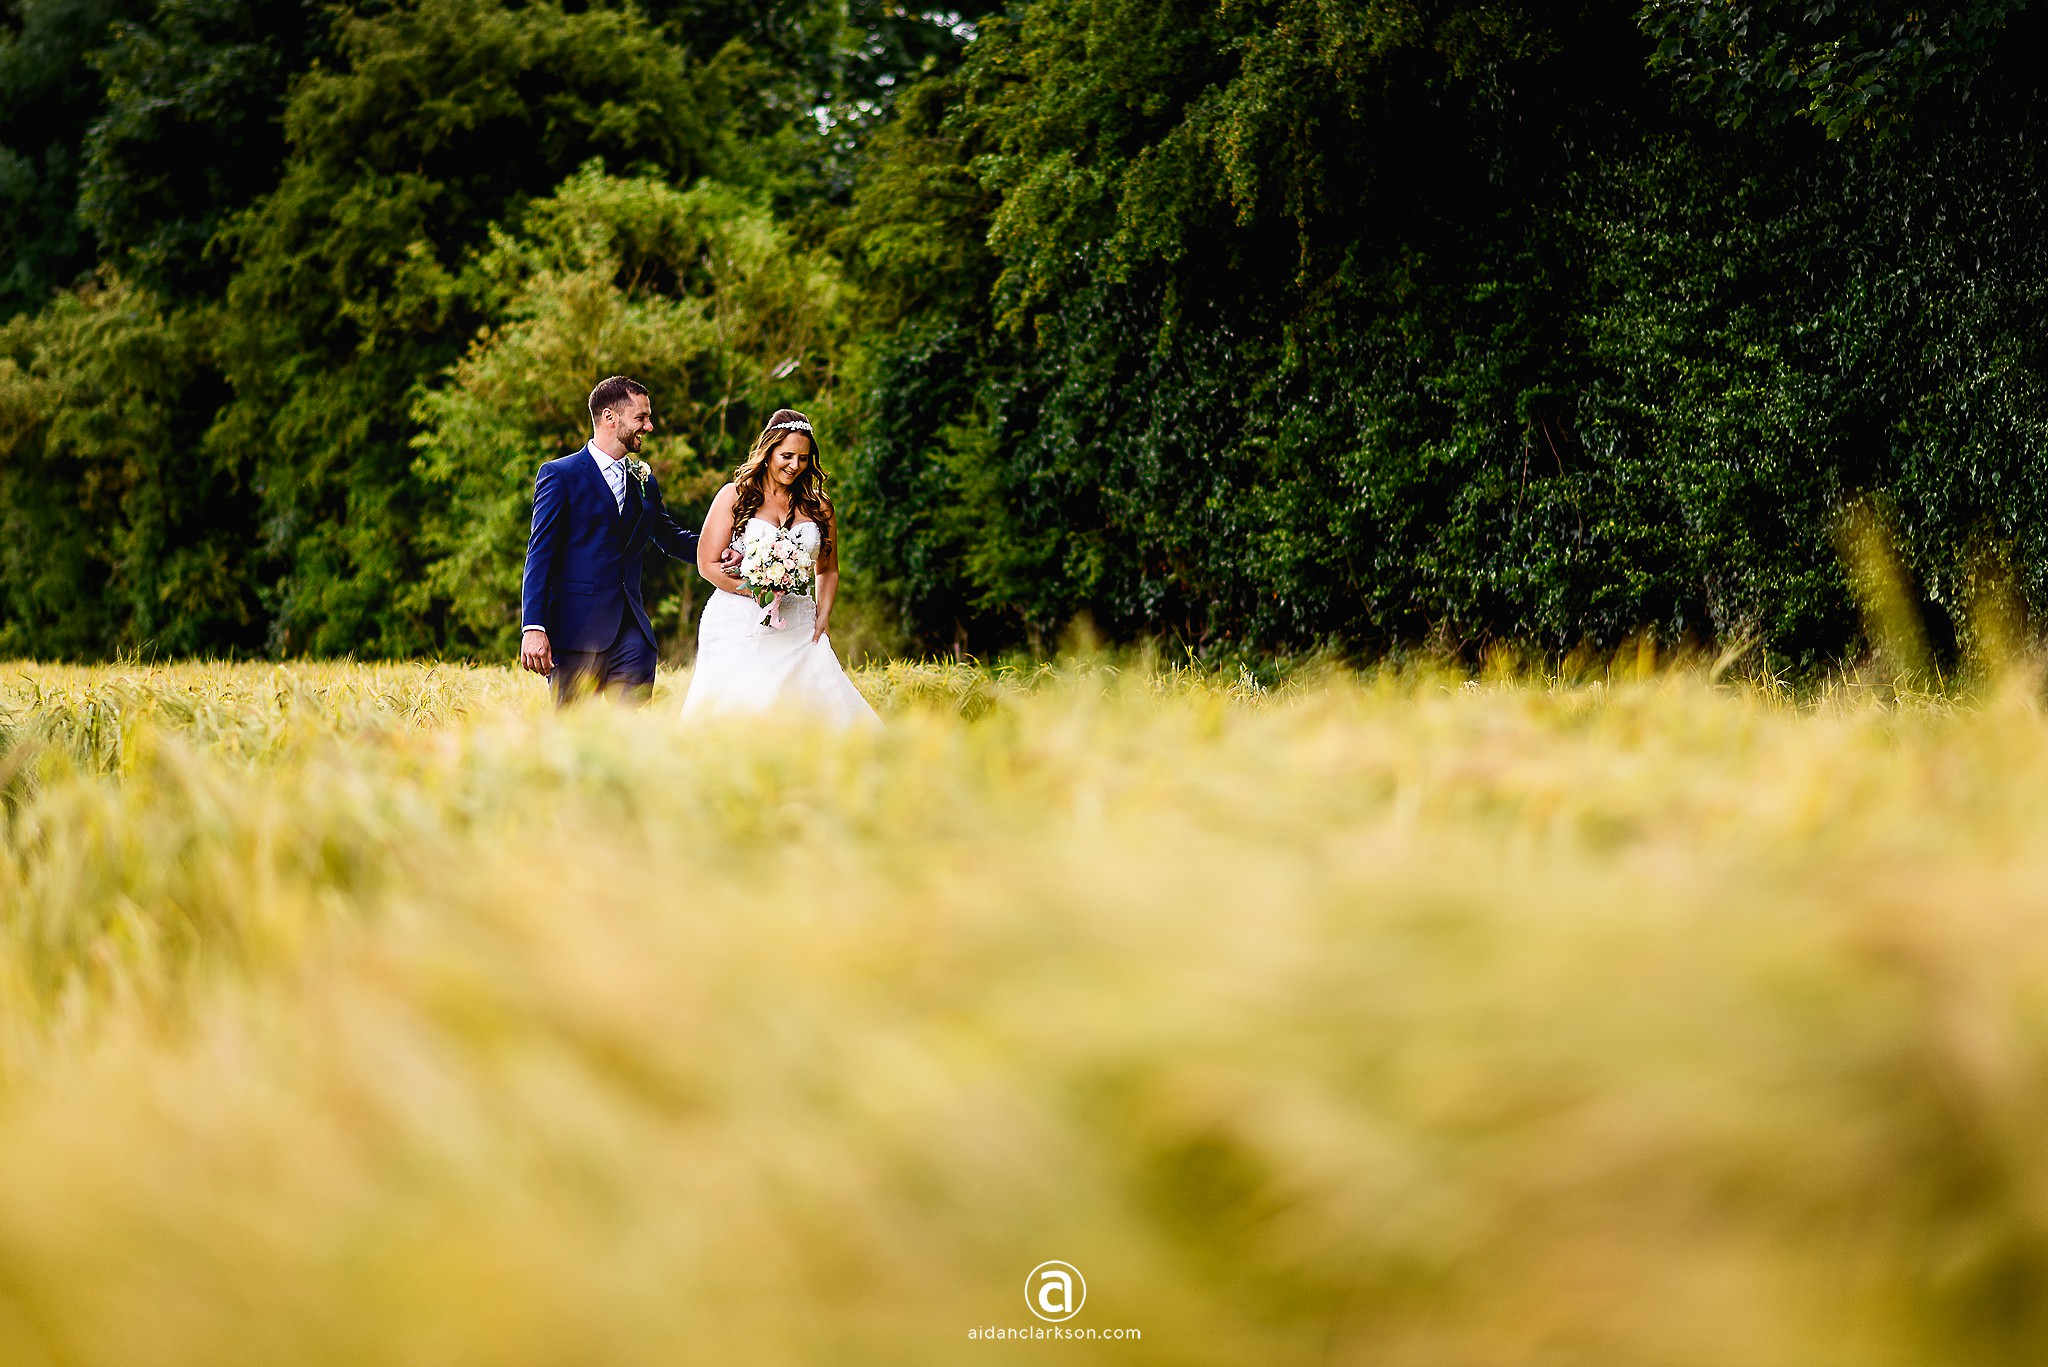 Hall Farm Wedding Photographer Lincolnshire_0050